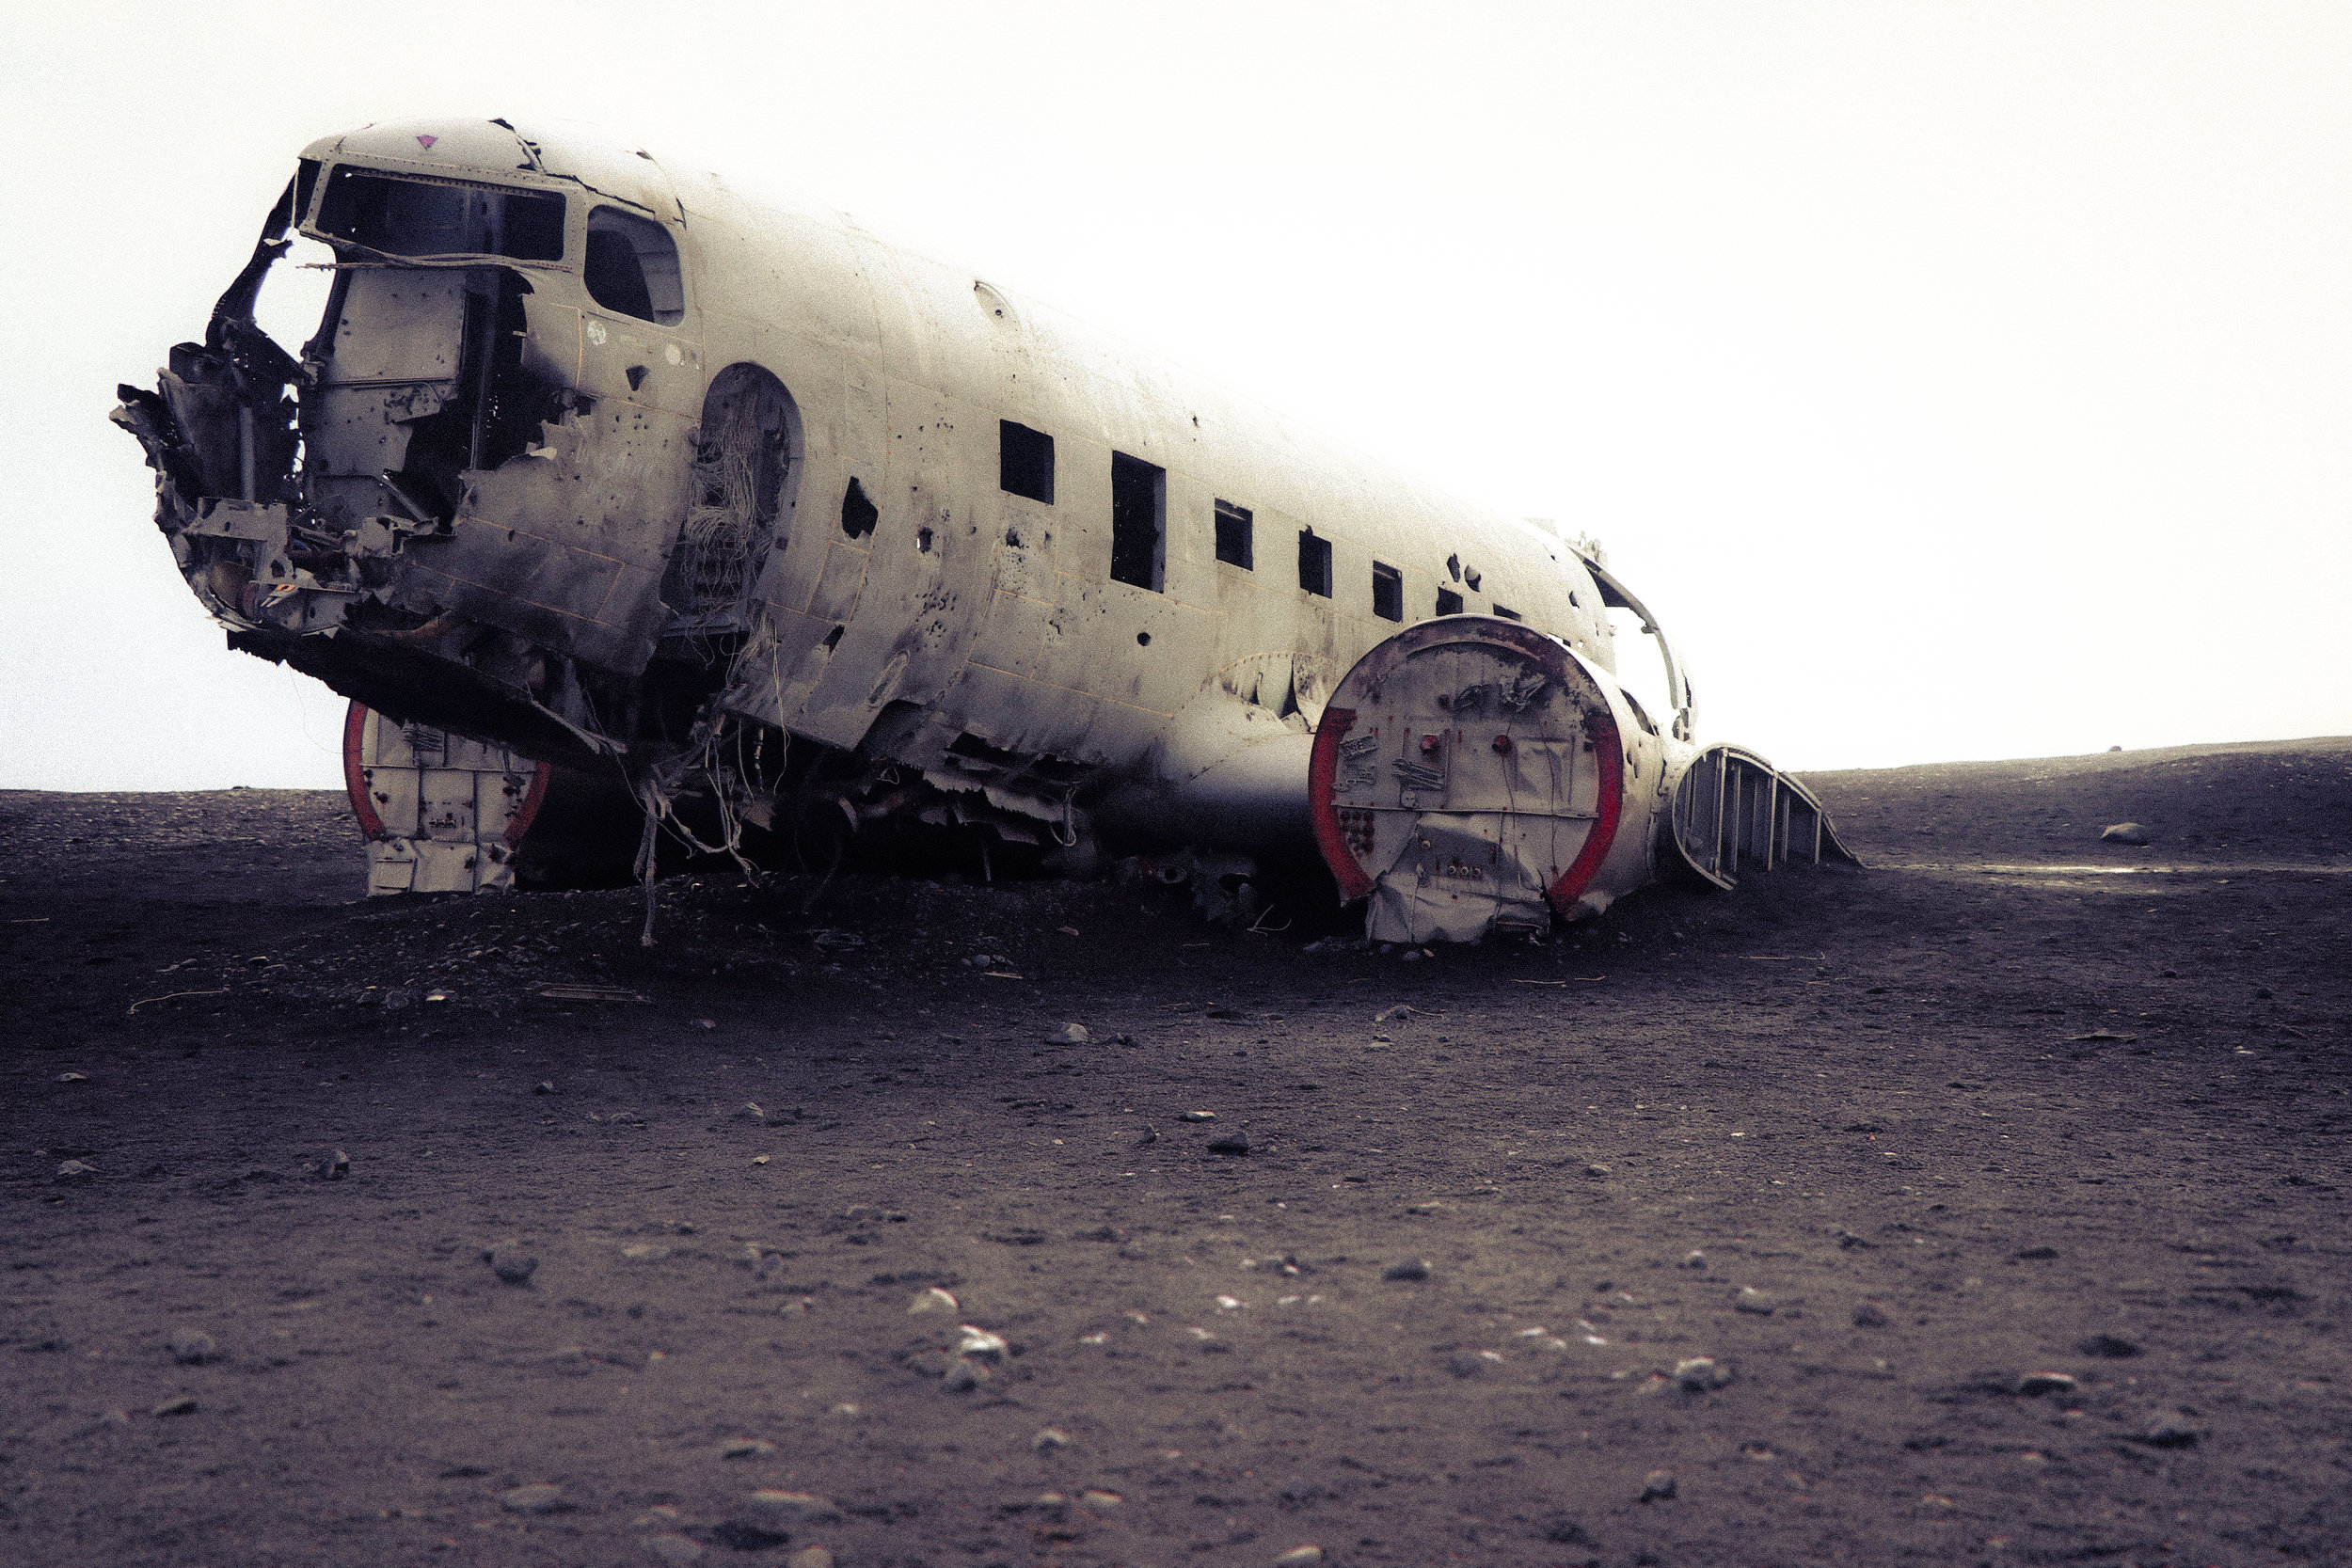 You may have to be very patient to get a shot like this. In fact, I believe I had to remove 2-3 people in photoshop even after taking this shot, but it's worth the effort right? I mean, come on, talk about a cool Instagram pic. The DC-3 plane wreck is a must visit location when you are traveling to Iceland.